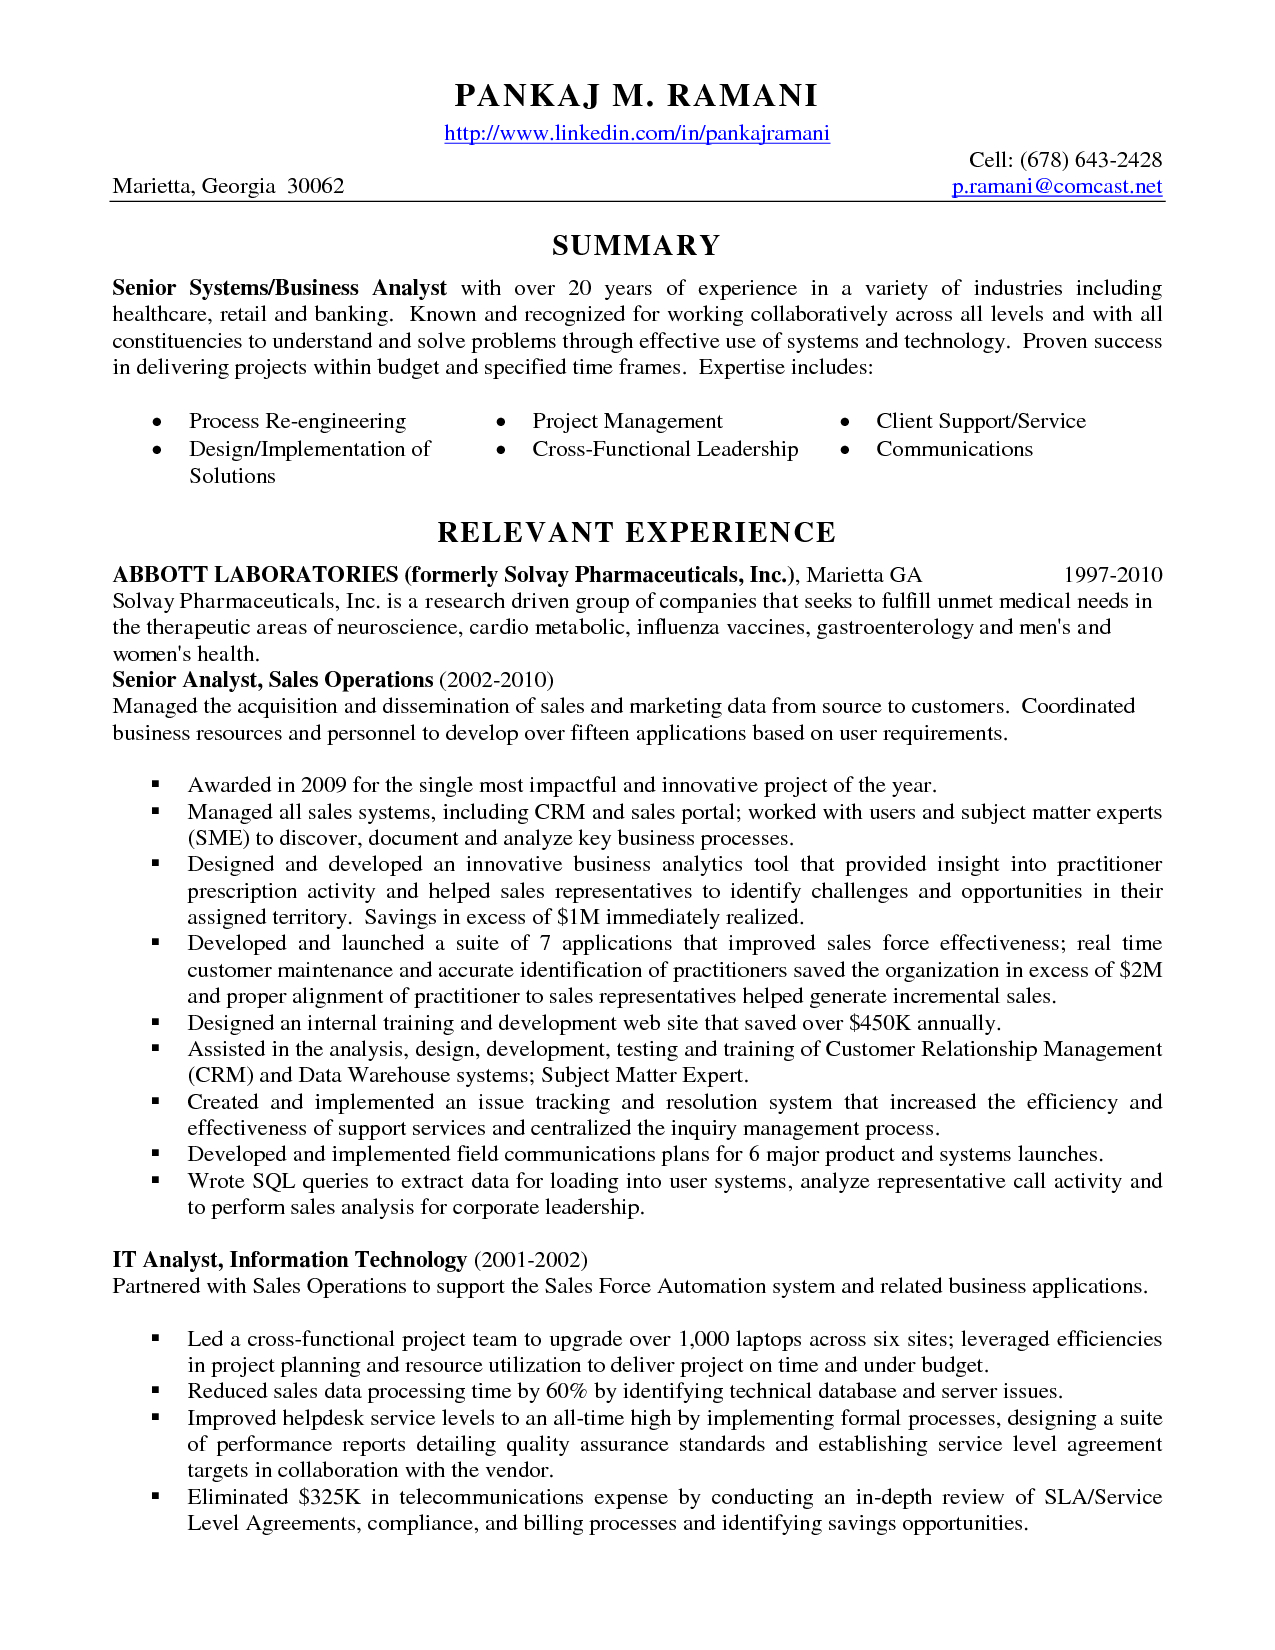 Health Care Business Analyst Resume - Senior Data Analyst Cv Resume format Best Resume Templates